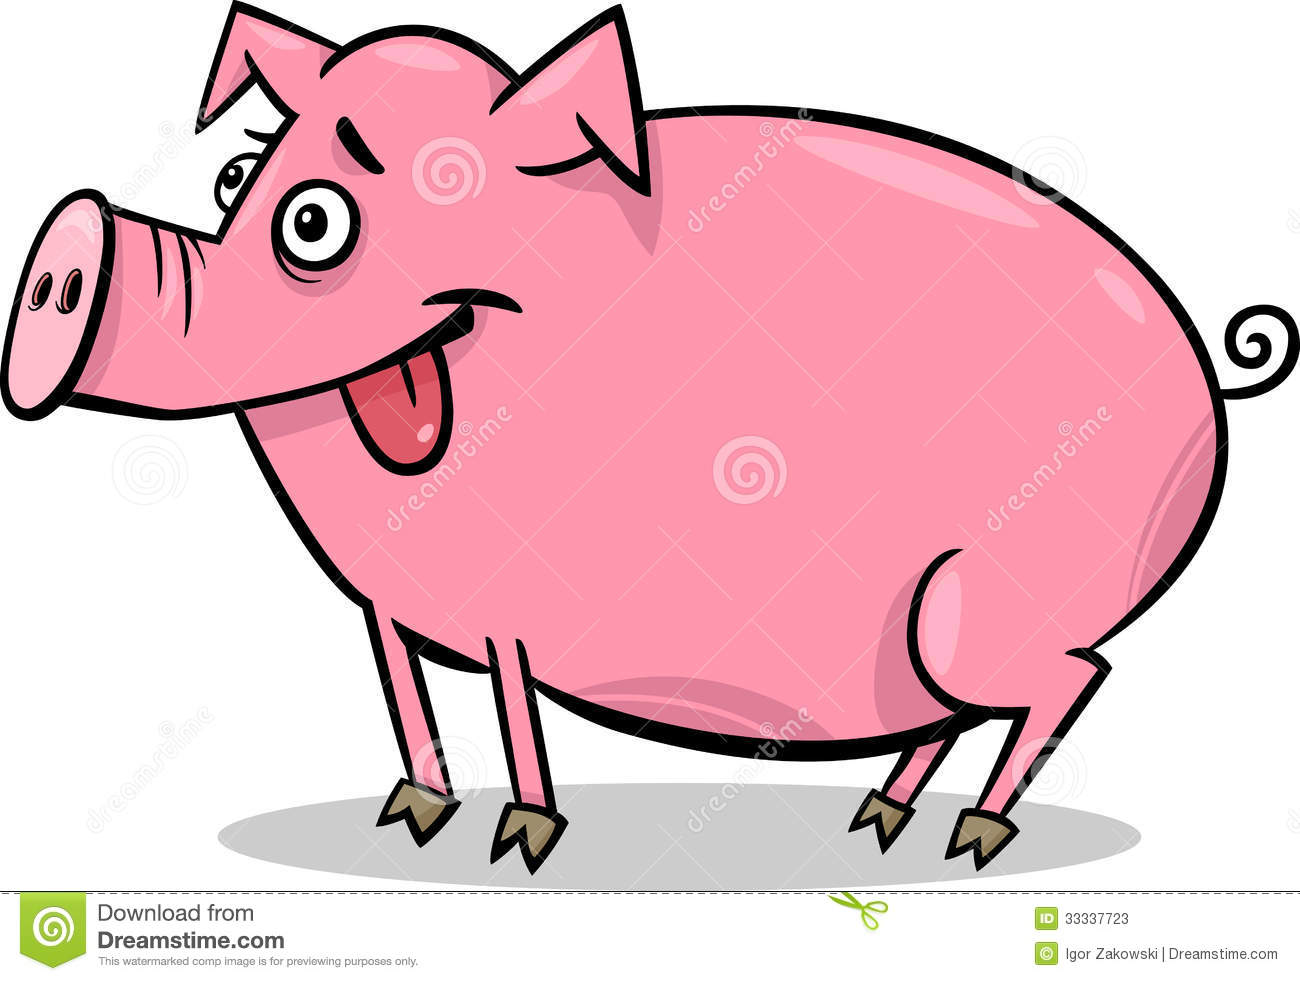 pigs use of language in animal farm Animal farm propaganda and fear essay  by the pigs causing animal farm to become a totalitarian dictatorship  technique by using complex language and terms.